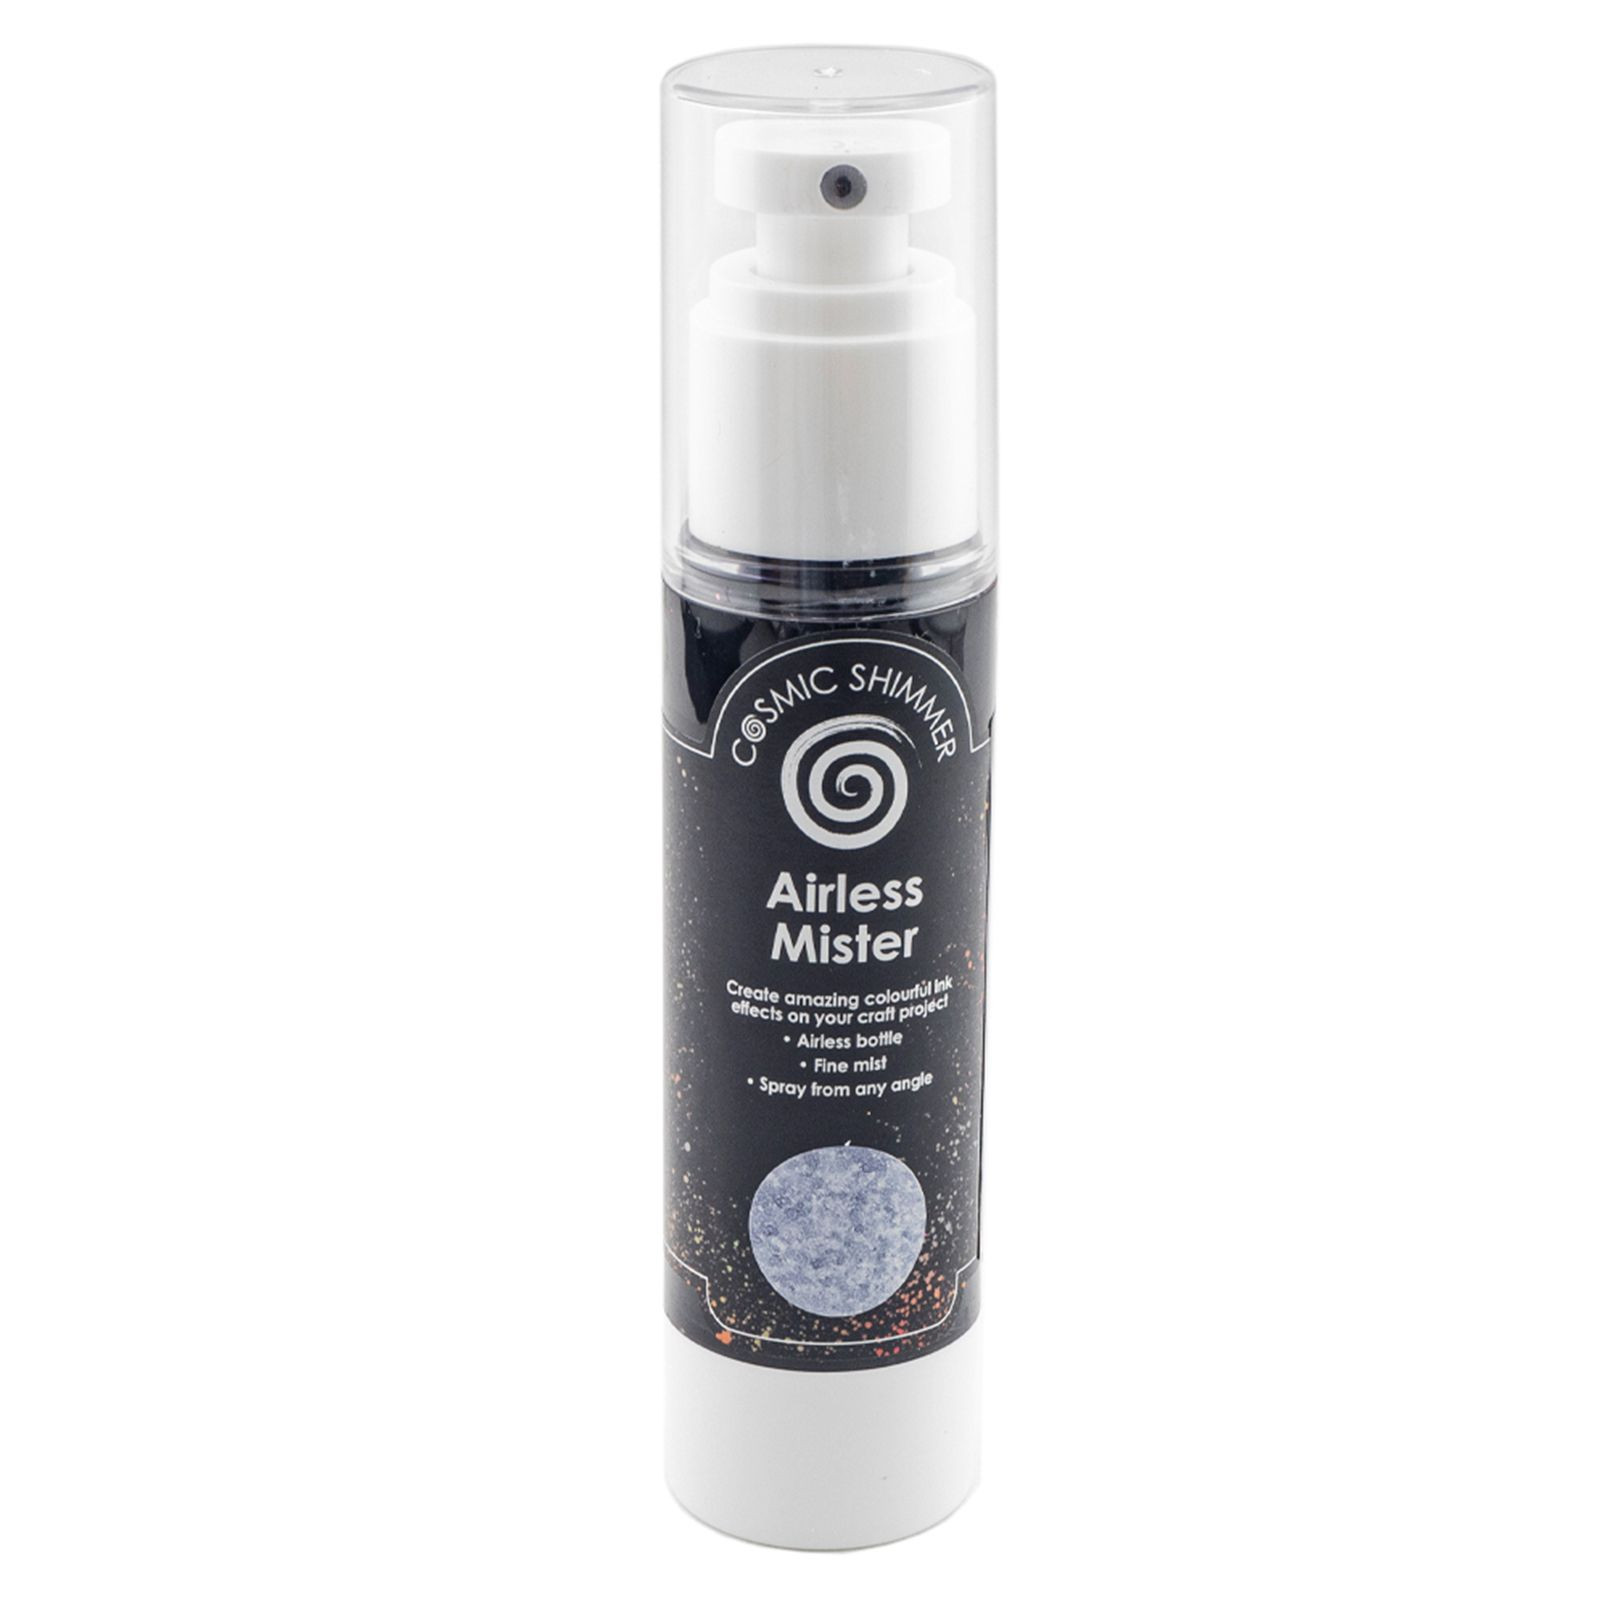 CE Cosmic shimmer airless mister night